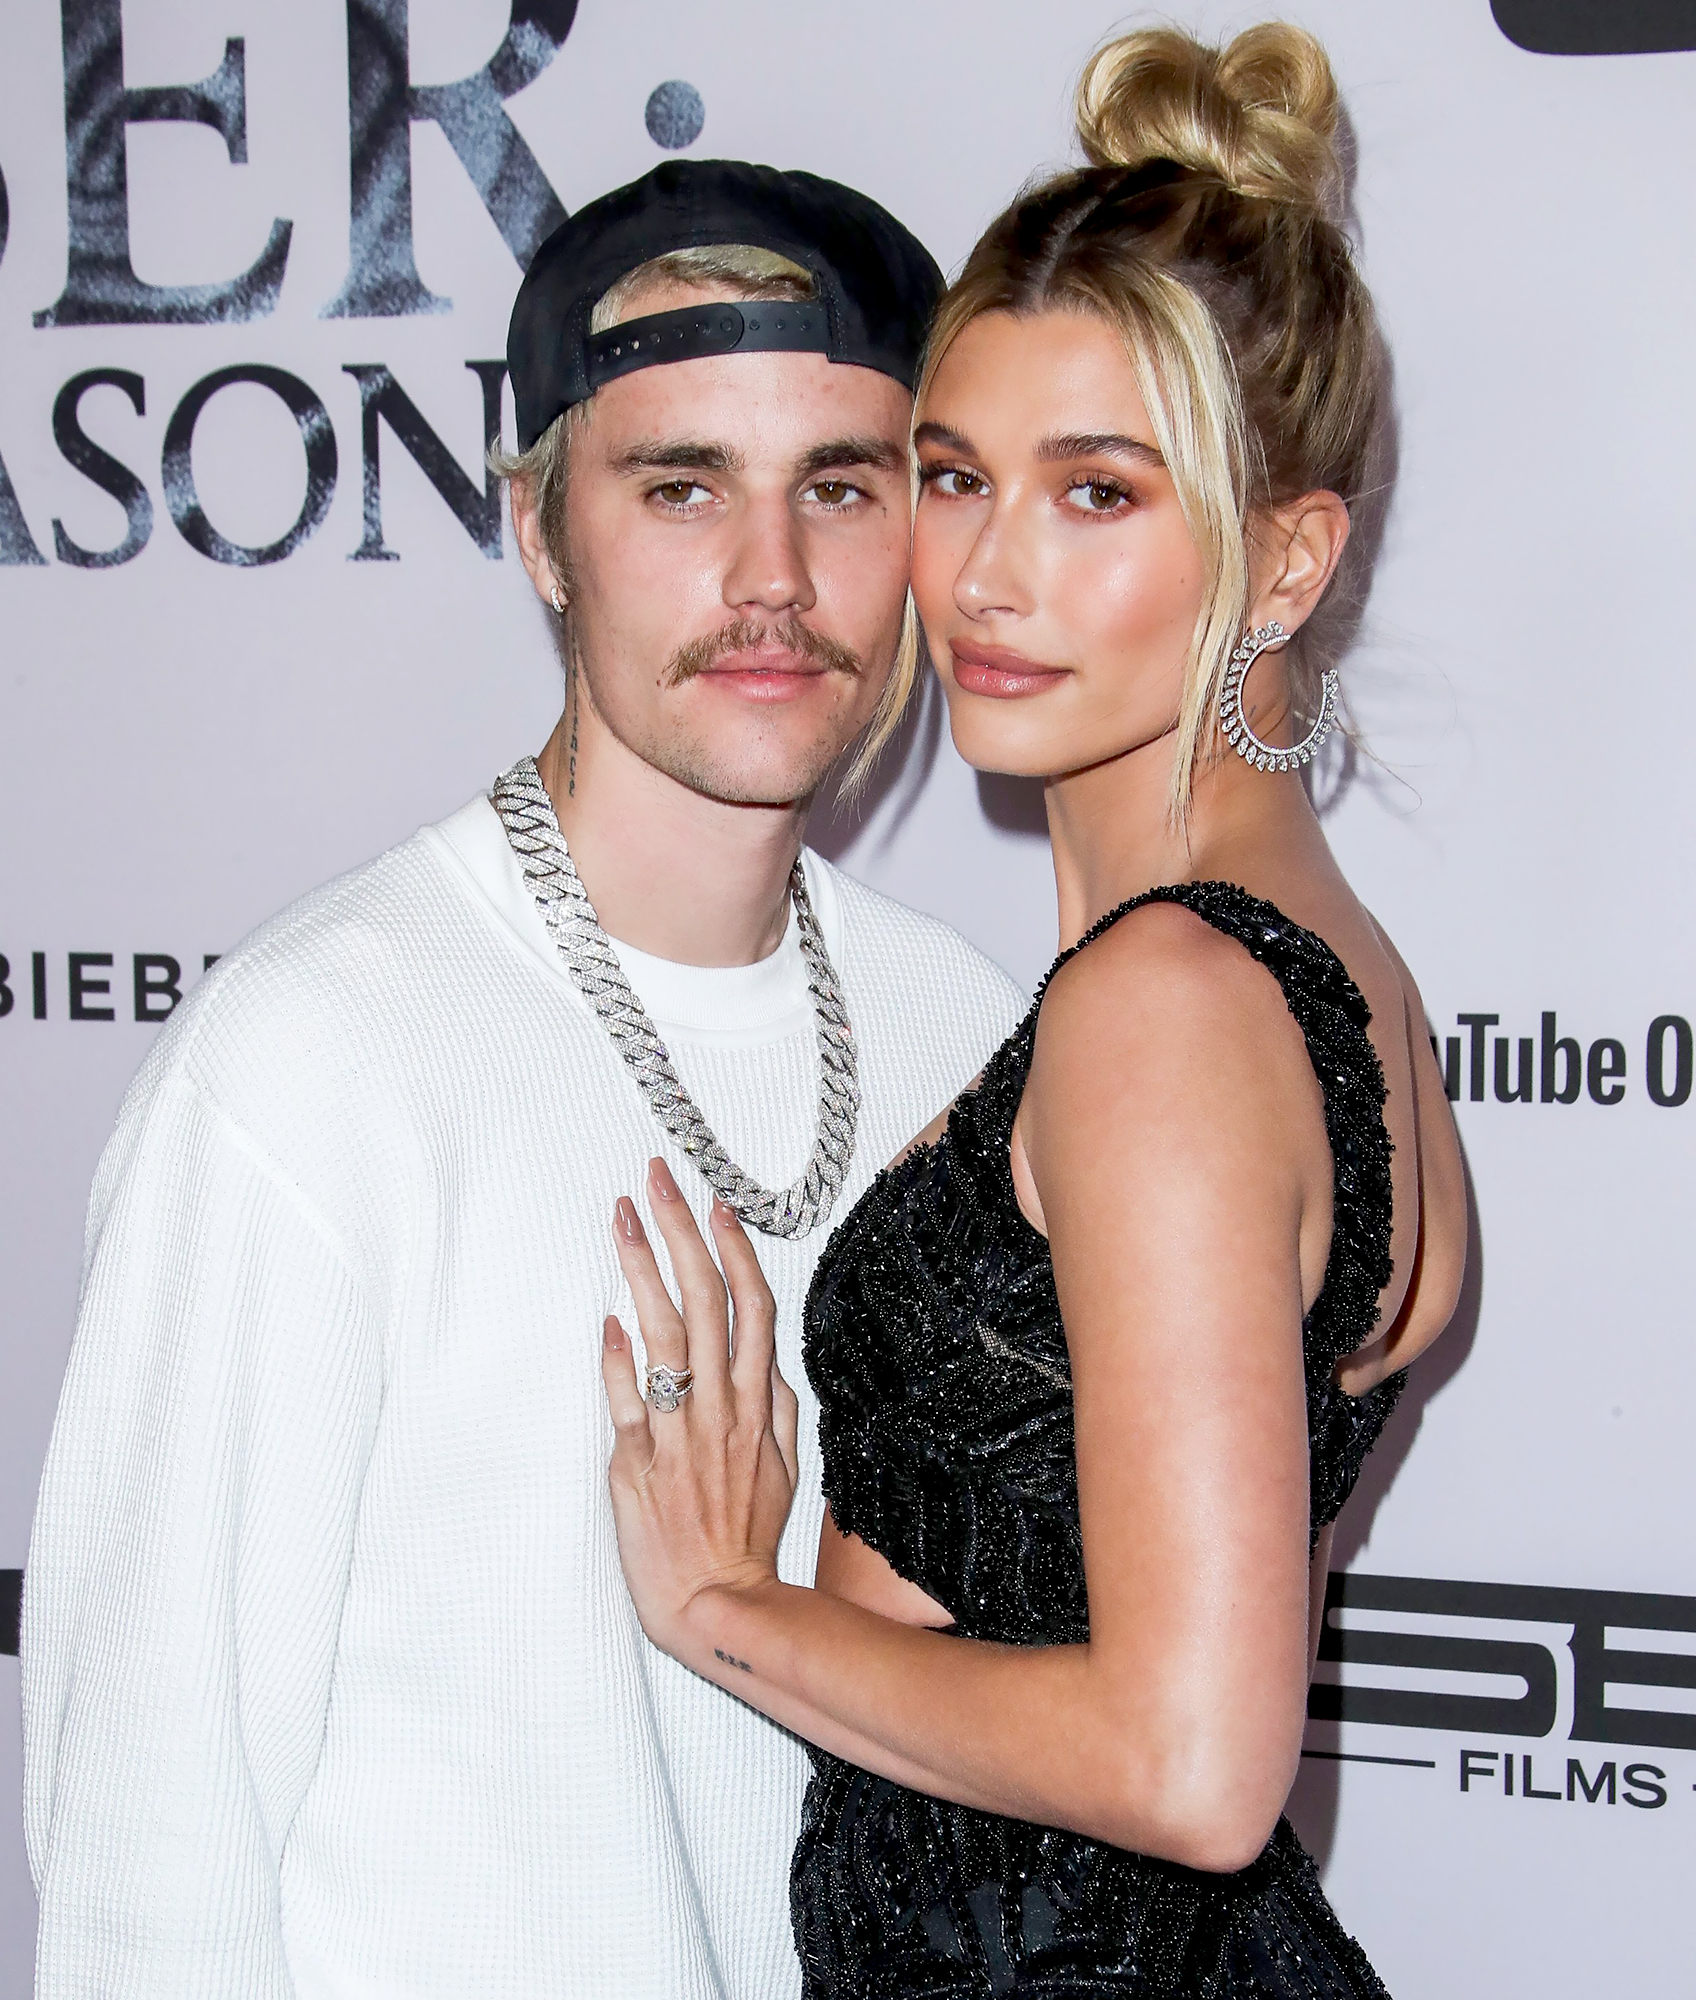 Justin-Bieber-Was-Nervous-About-Commitment-Before-Getting-Married